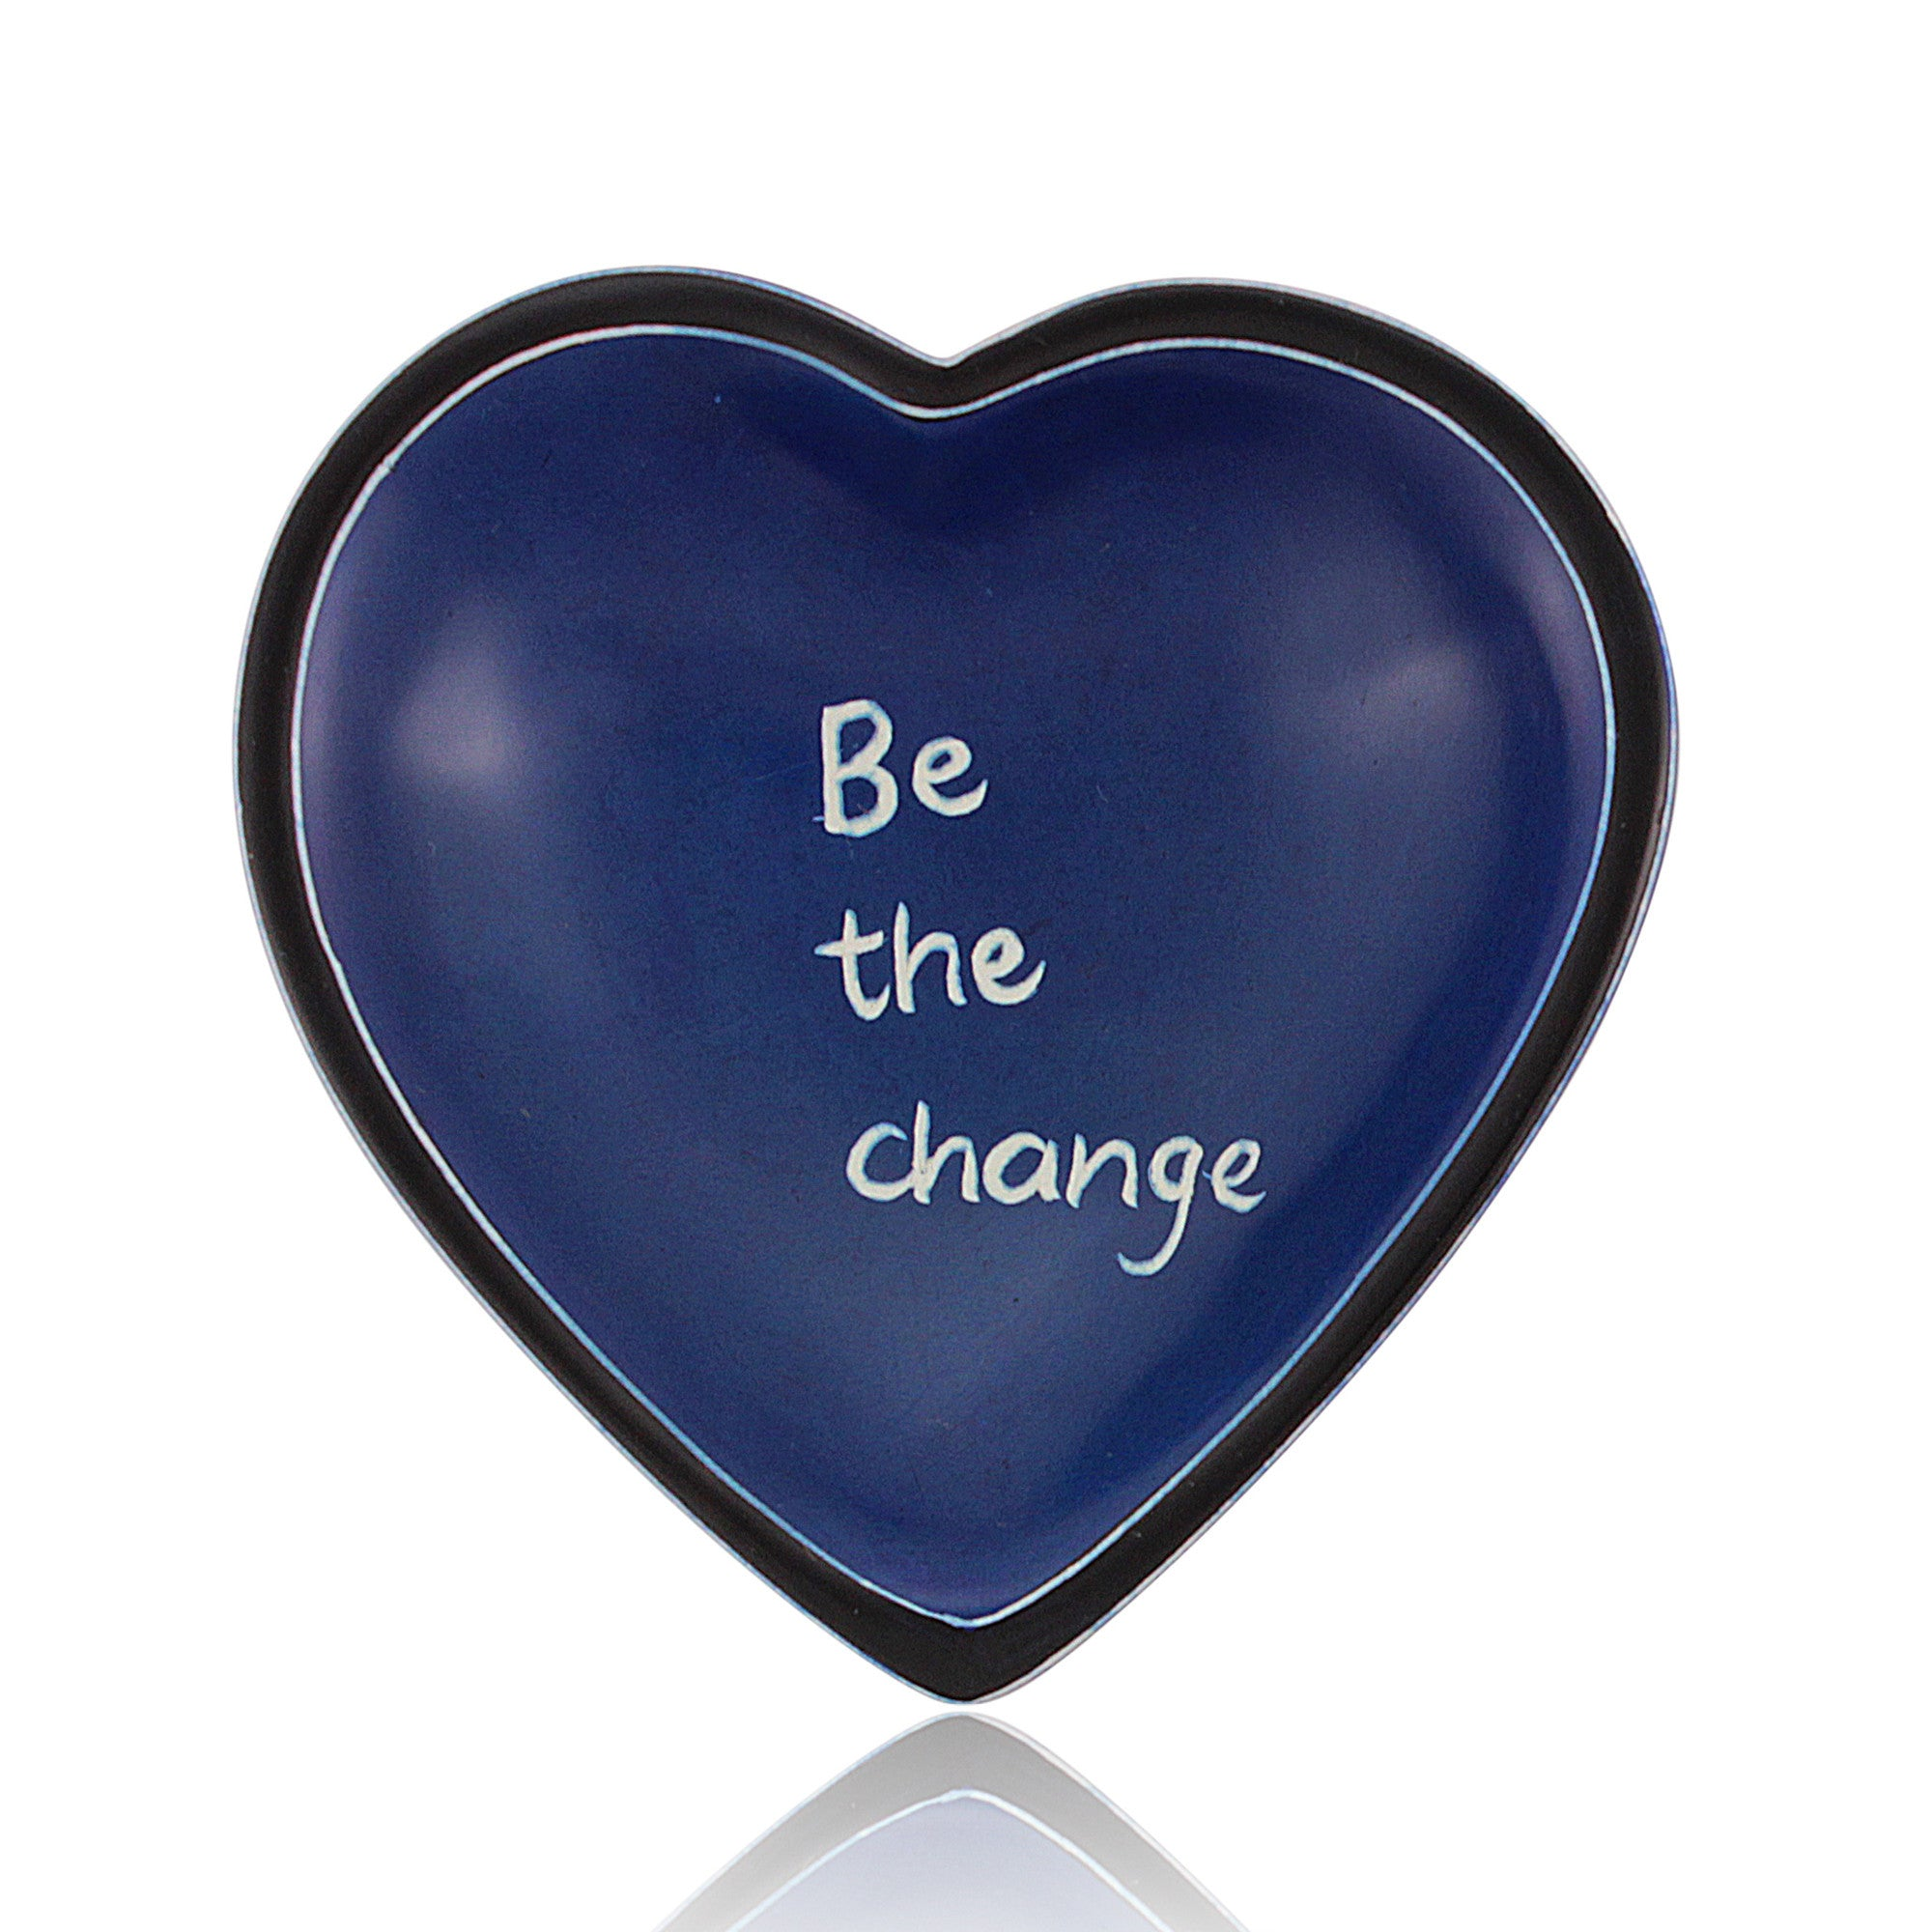 Be the Change Kenyan Heart Shaped Soapstone Dish by Venture Imports